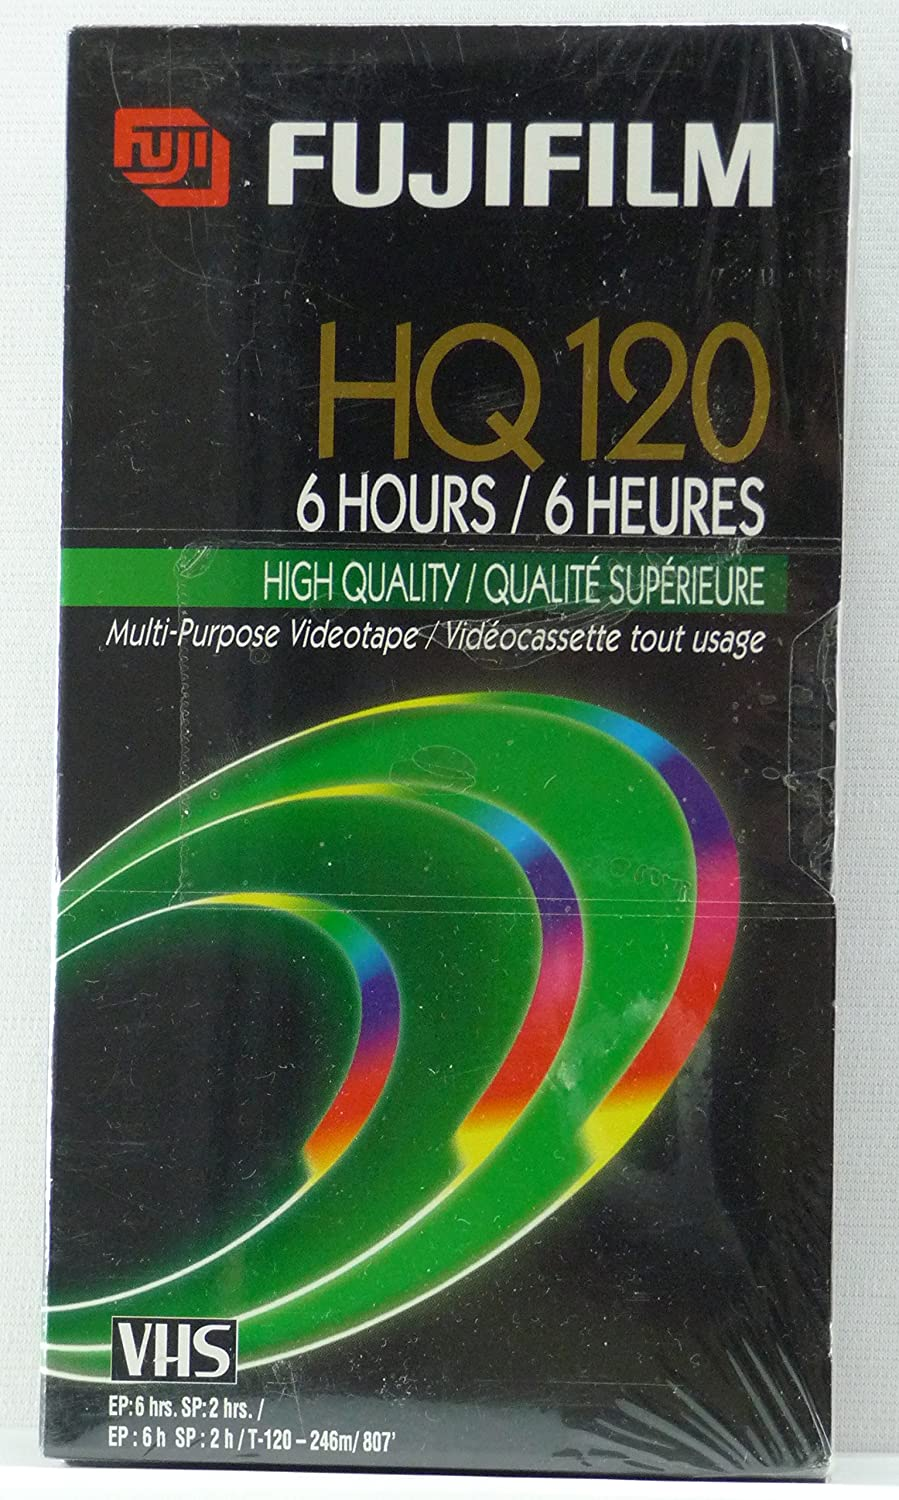 FujiFilm HQ120 VHS Tape (3-Pack) Fuji Photo Film U.S.A. Inc. LYSB010IAVZTQ-CMPTRACCS